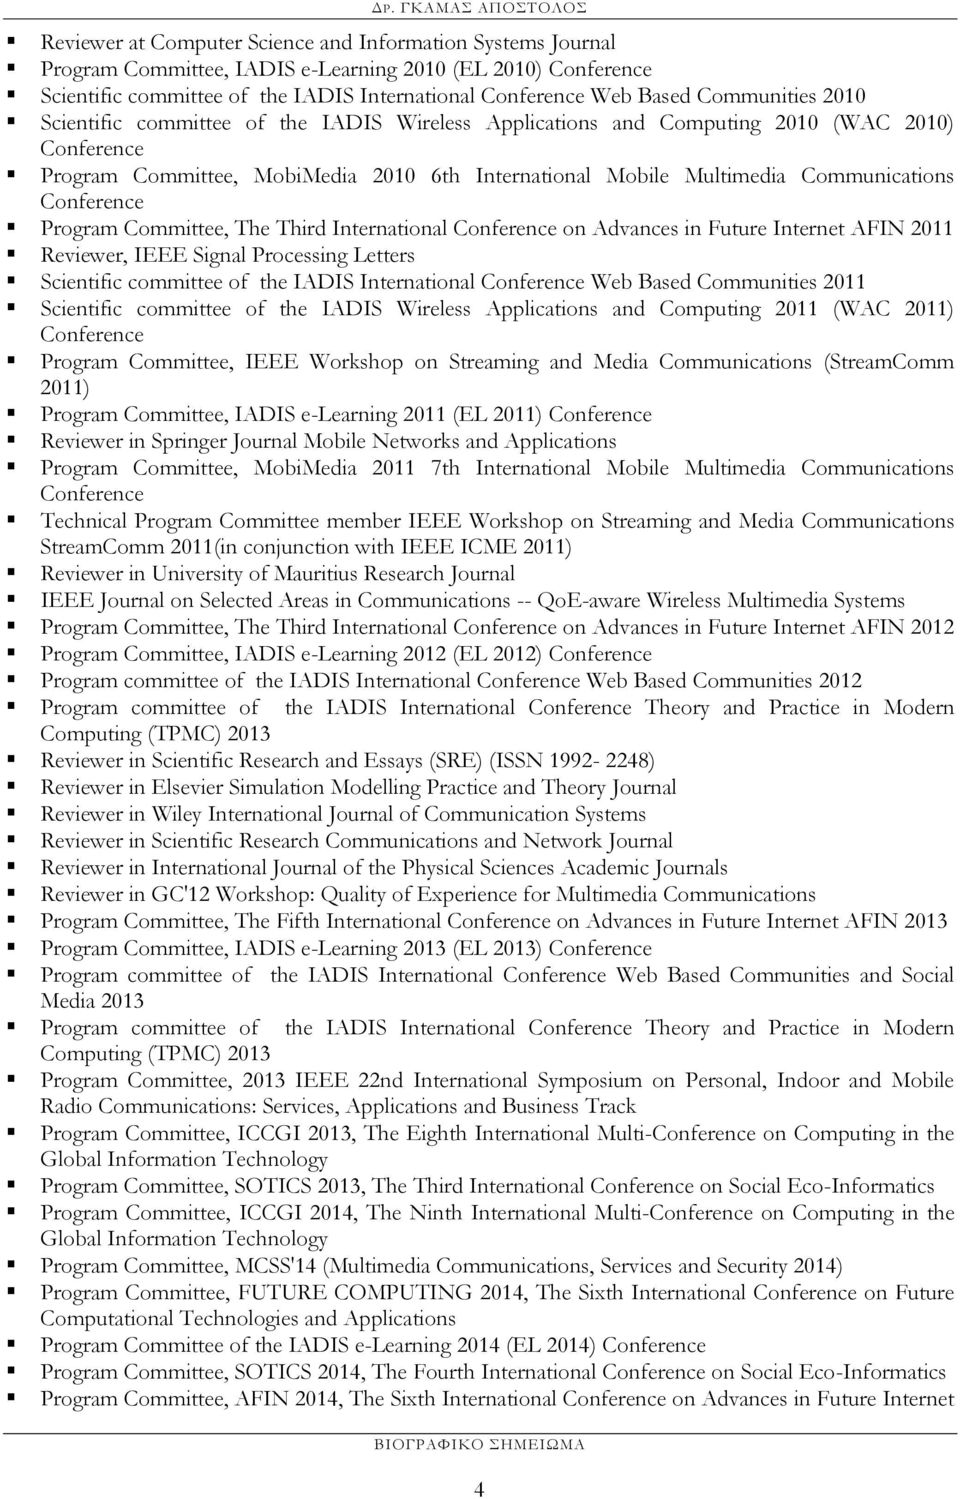 Conference Program Committee, The Third International Conference on Advances in Future Internet AFIN 2011 Reviewer, IEEE Signal Processing Letters Scientific committee of the IADIS International